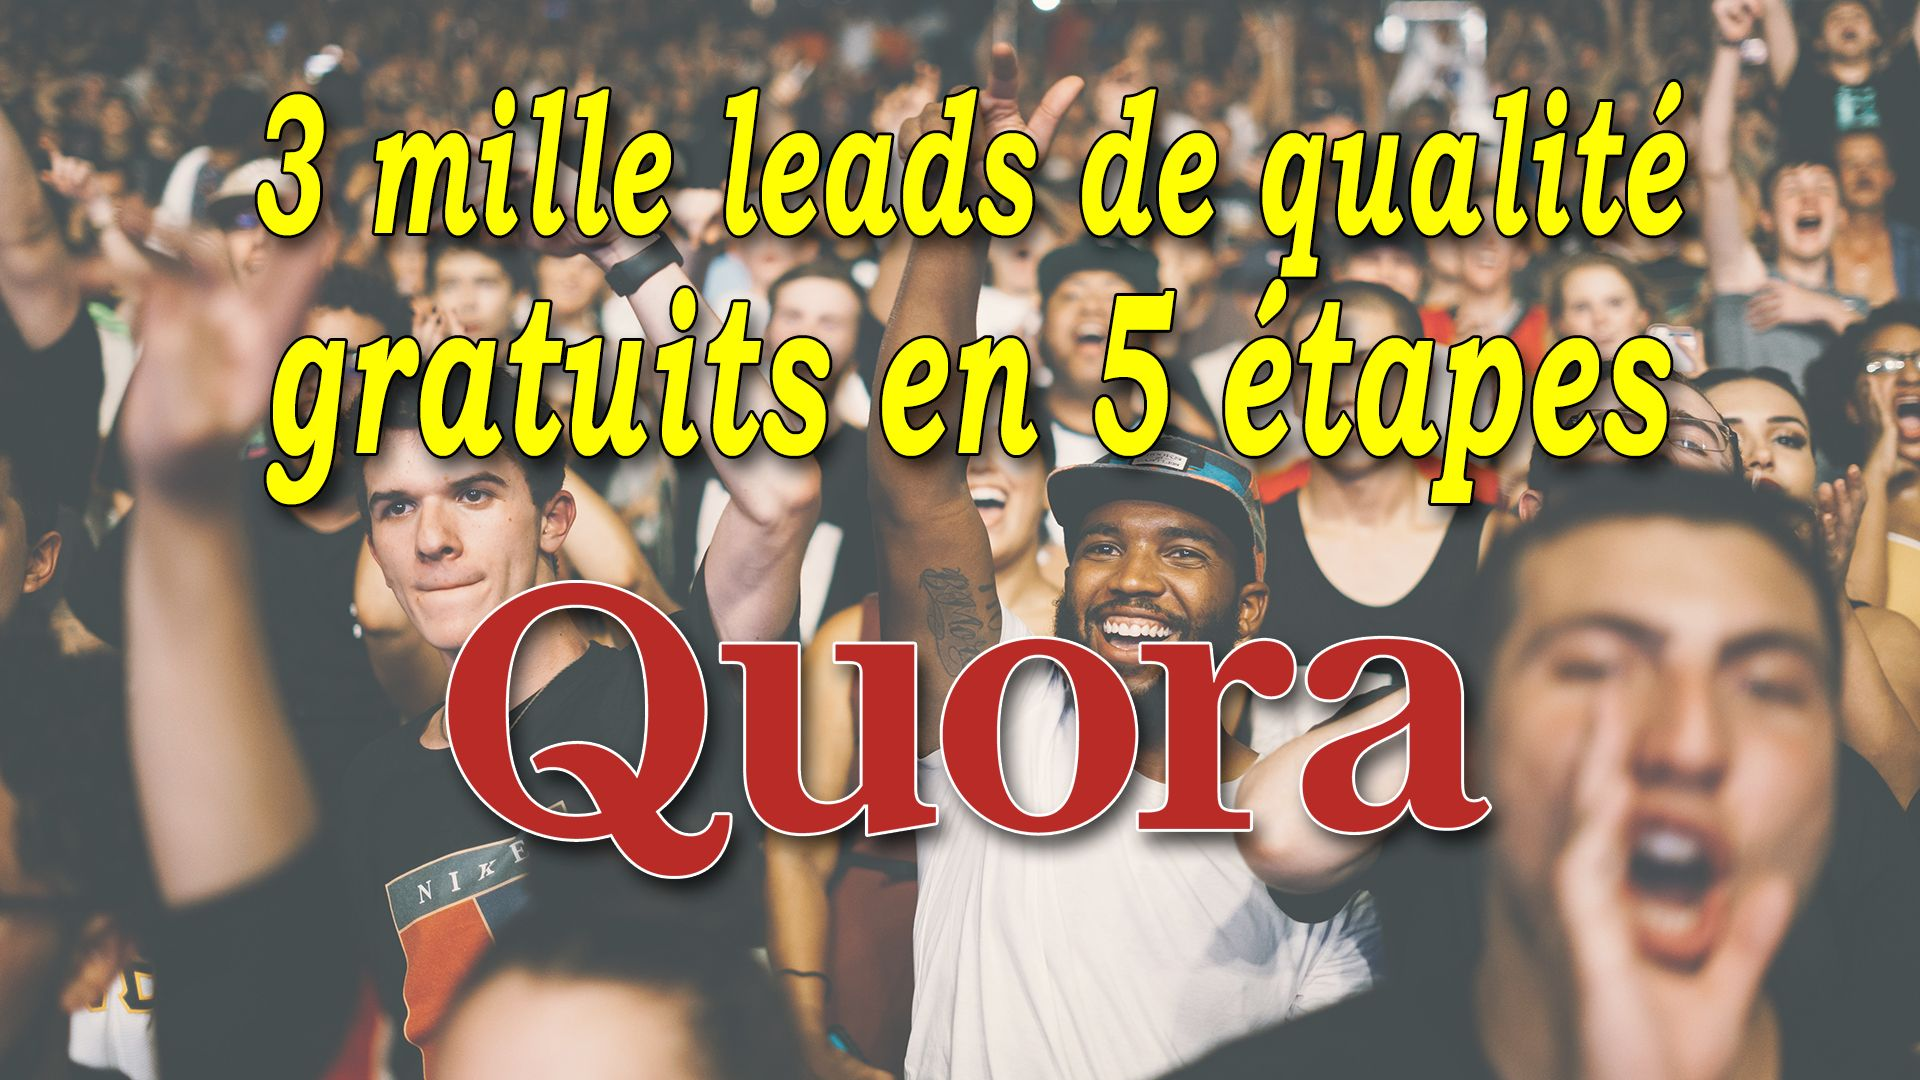 3 mille leads de qualité gratuits en 5 étapes #GrowthHacking #WebMarketing #FormationGrowthHacking #CentreDeFormationFrance #TunnelAARRR #AARRR #SocialMedia #CommunityManagement #SEO #quora